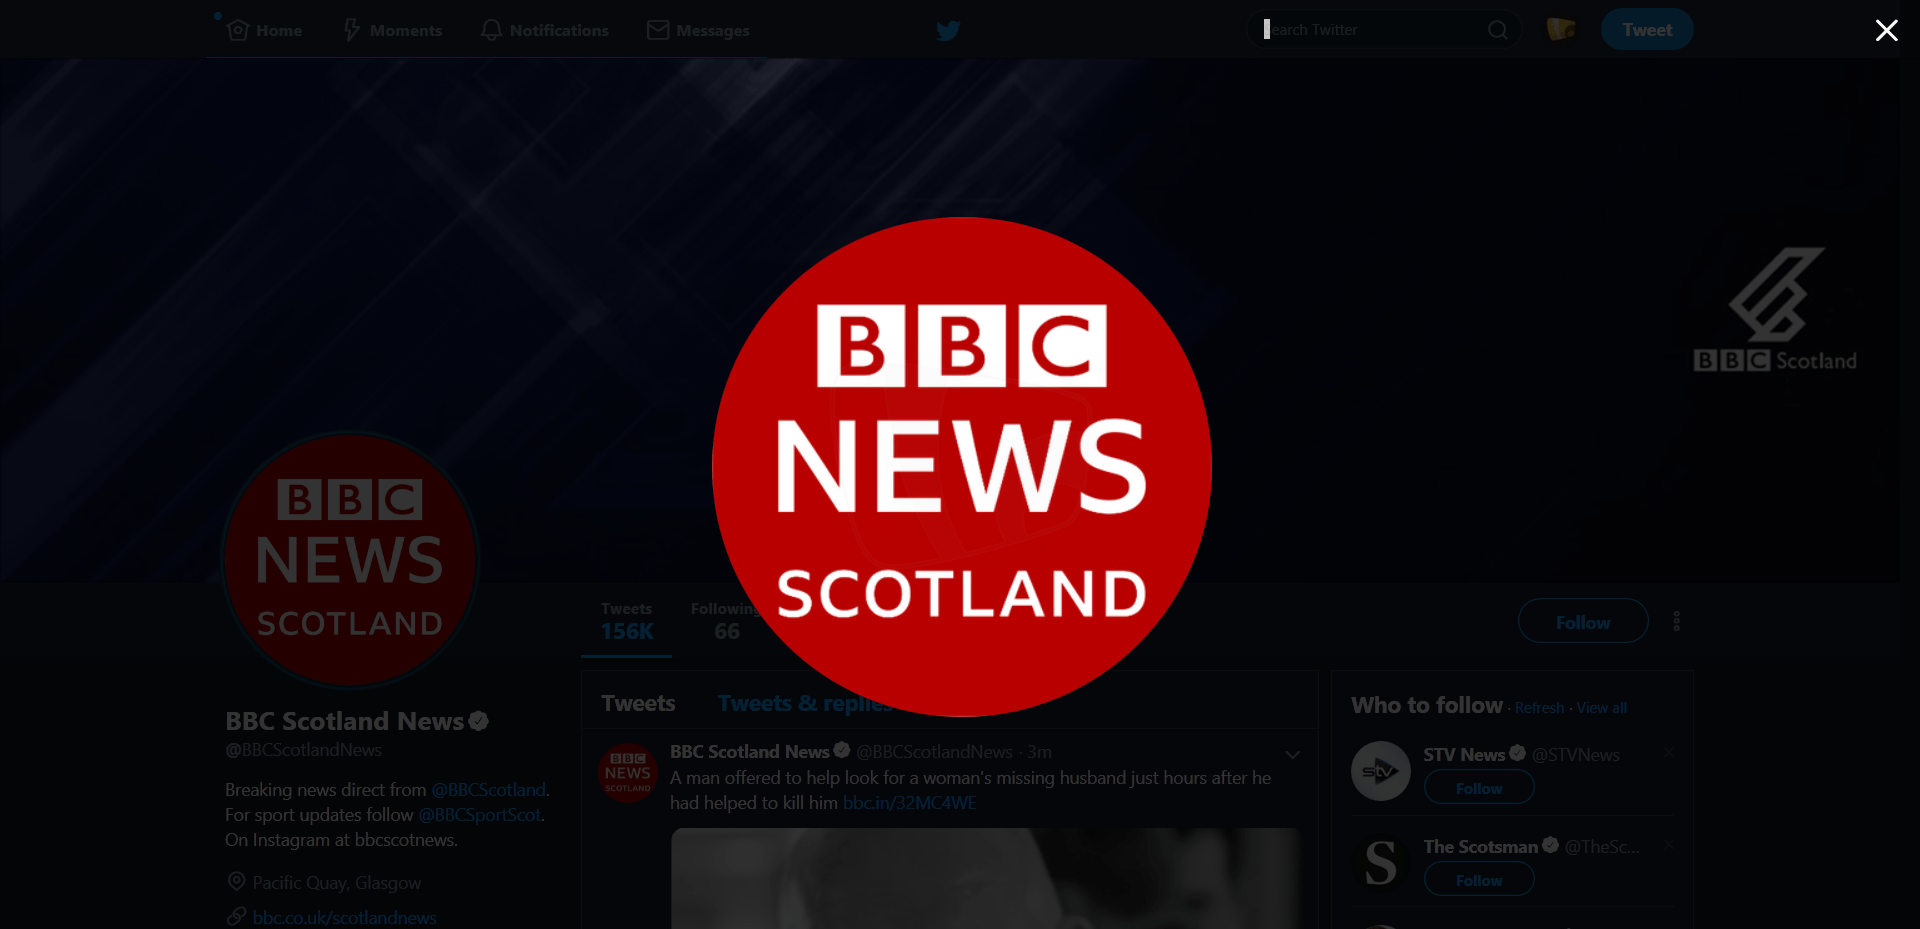 PICTURED: BBC News Scotland branding on social media.